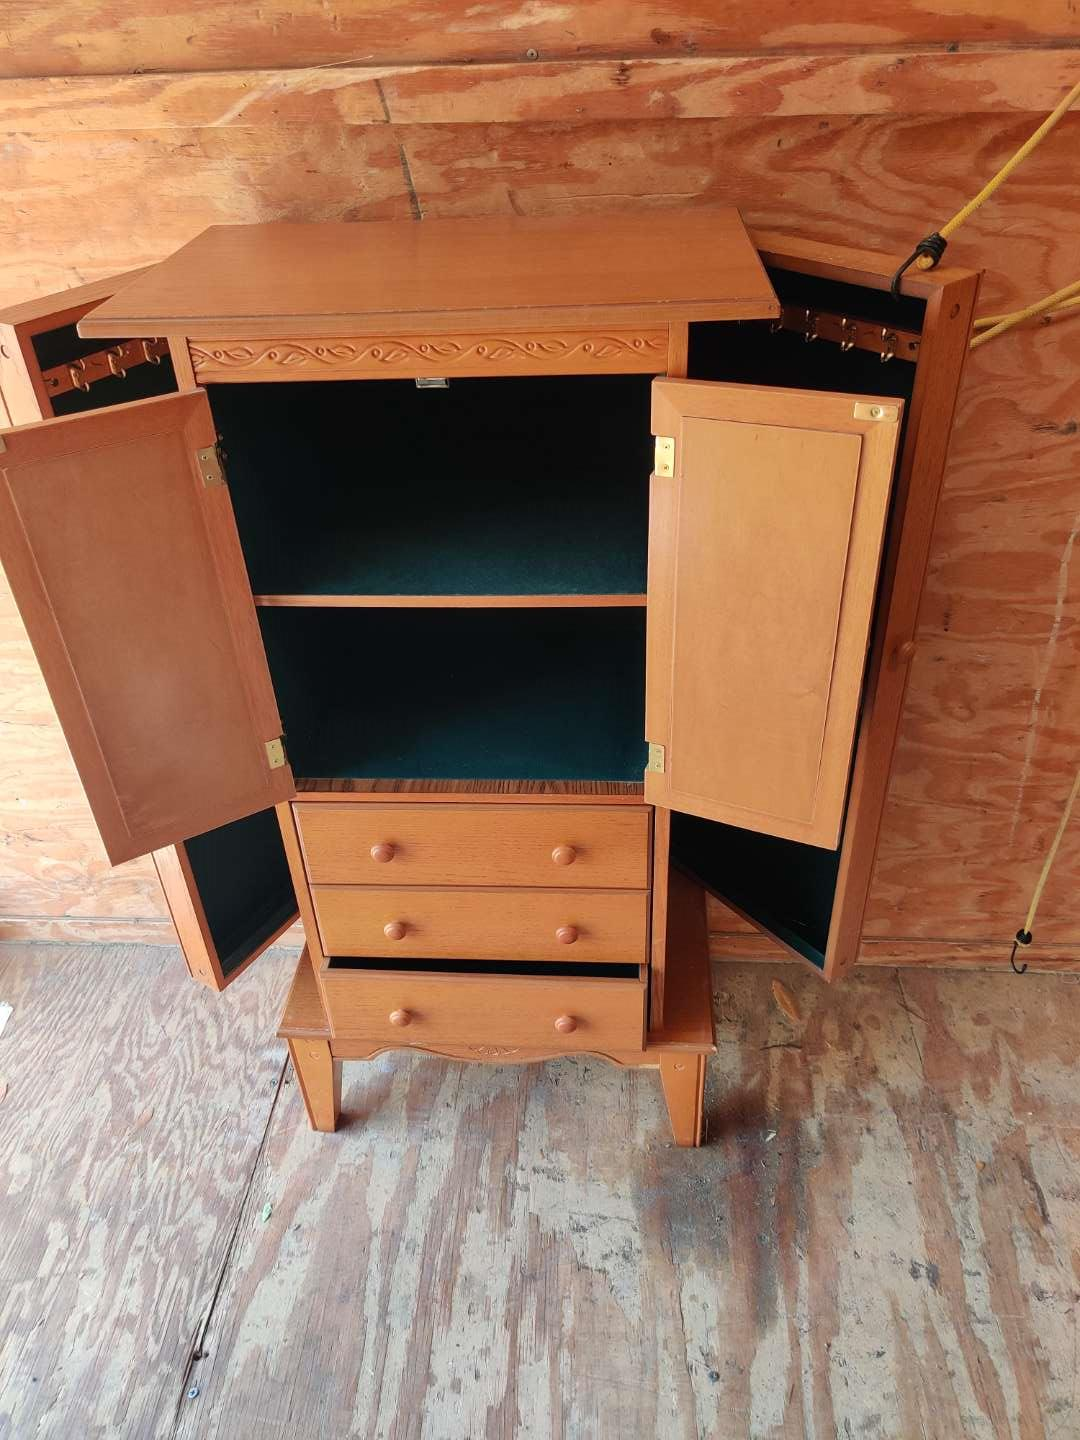 # 78 very nice jewelry armoire top lifts up both sides of open